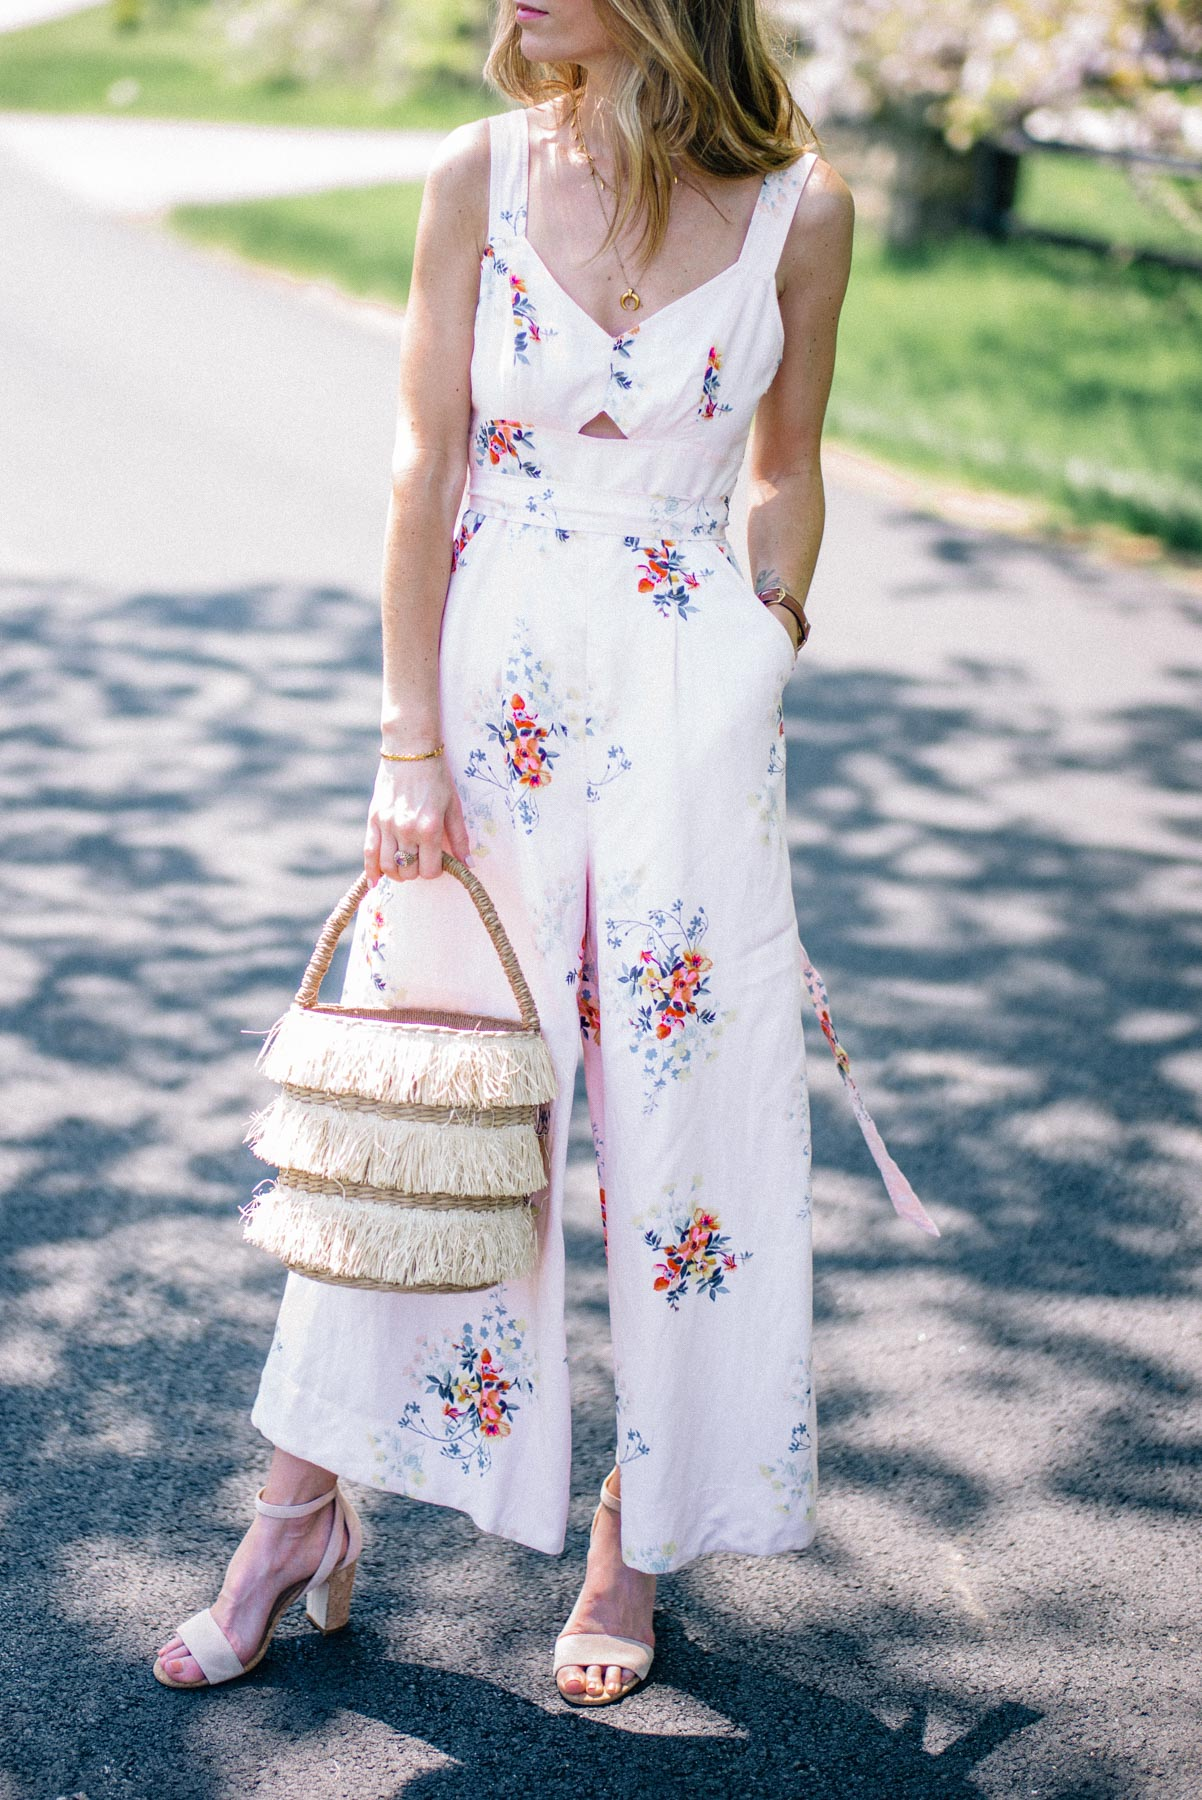 Jess Ann Kirby shares her favorite summer wedding outfit ideas including jumpsuits and statement accessories